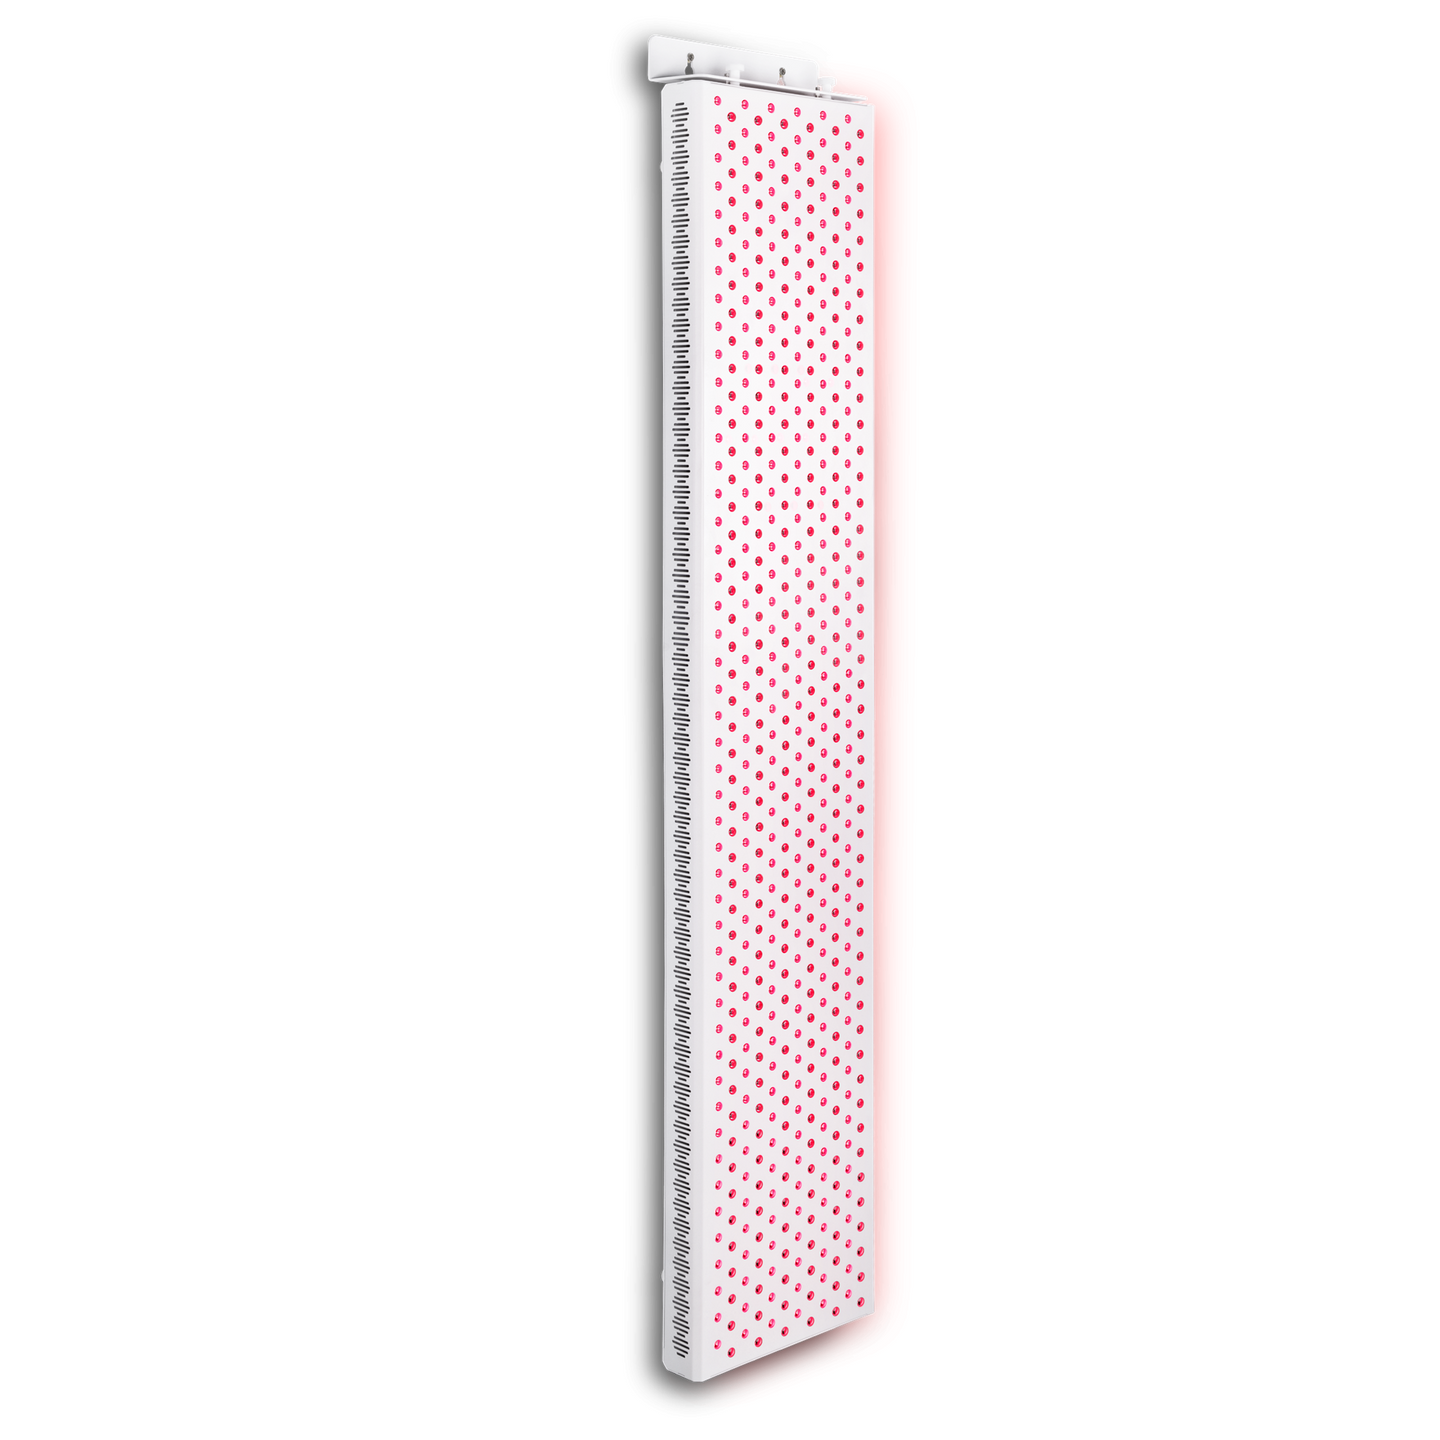 NEW! Rouge MAX Red Light Therapy For Full Body Coverage